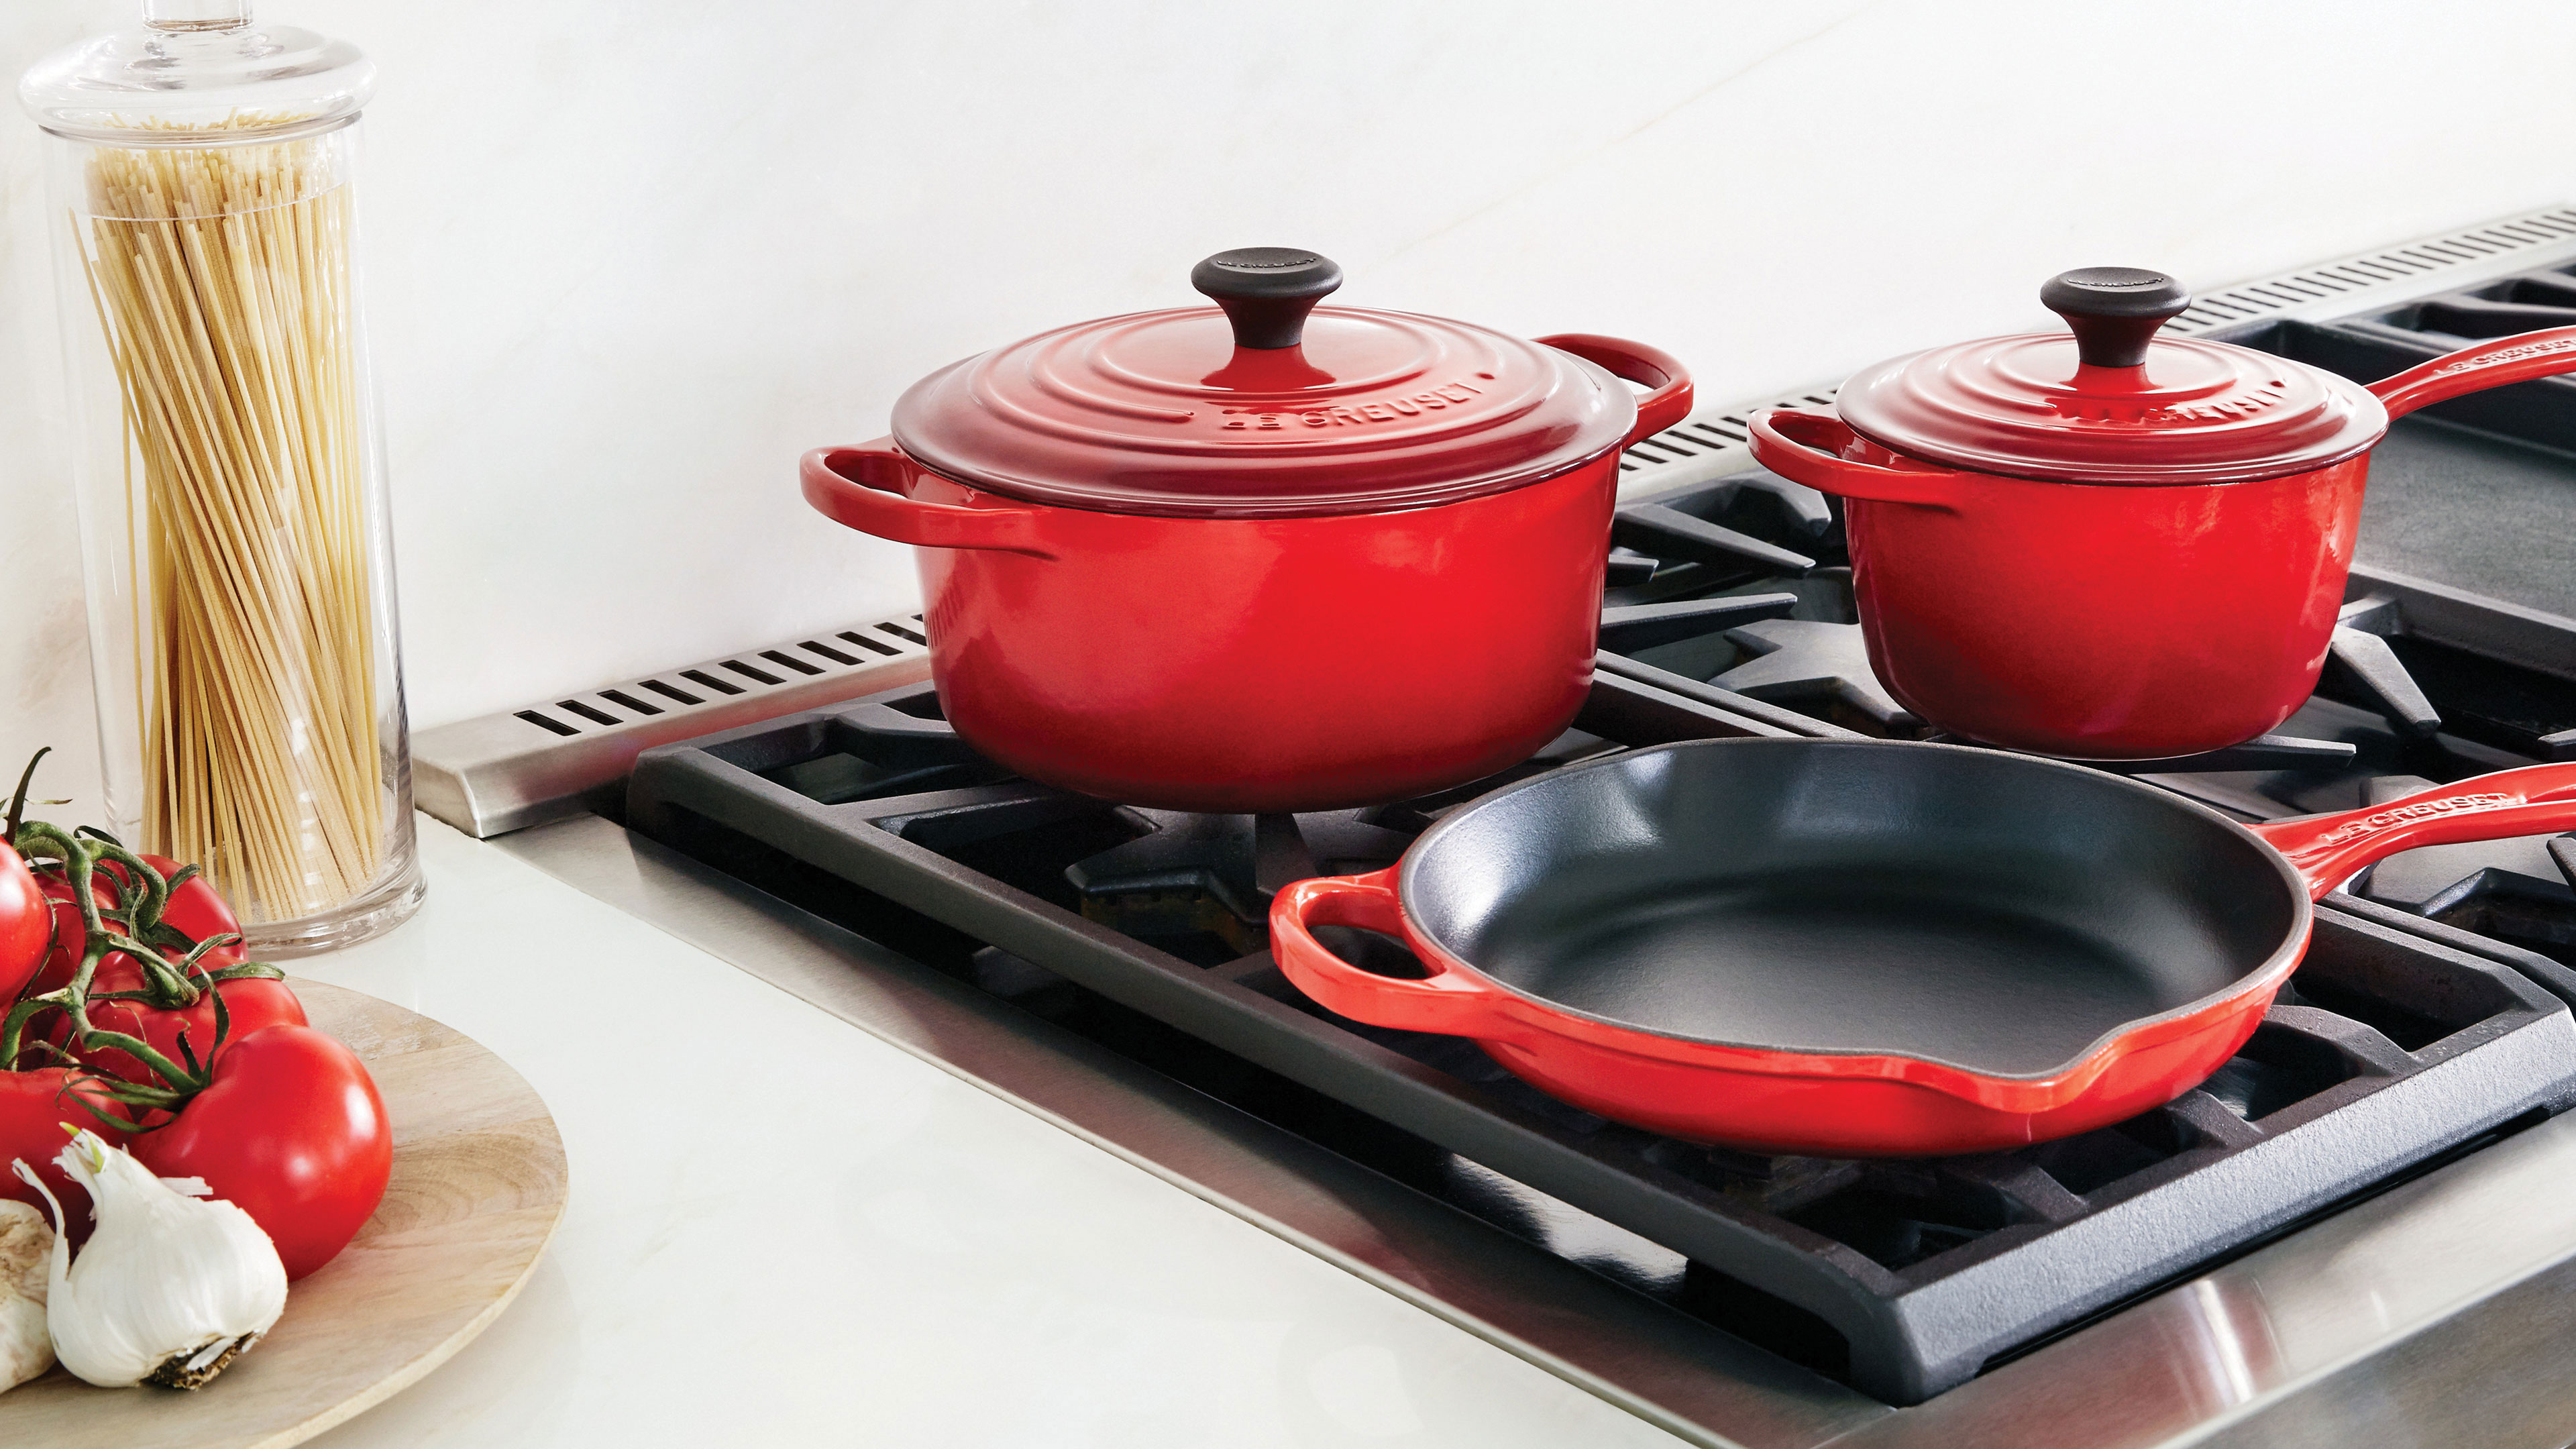 Le Creuset Signature Cast Iron Cookware Set 16 Piece